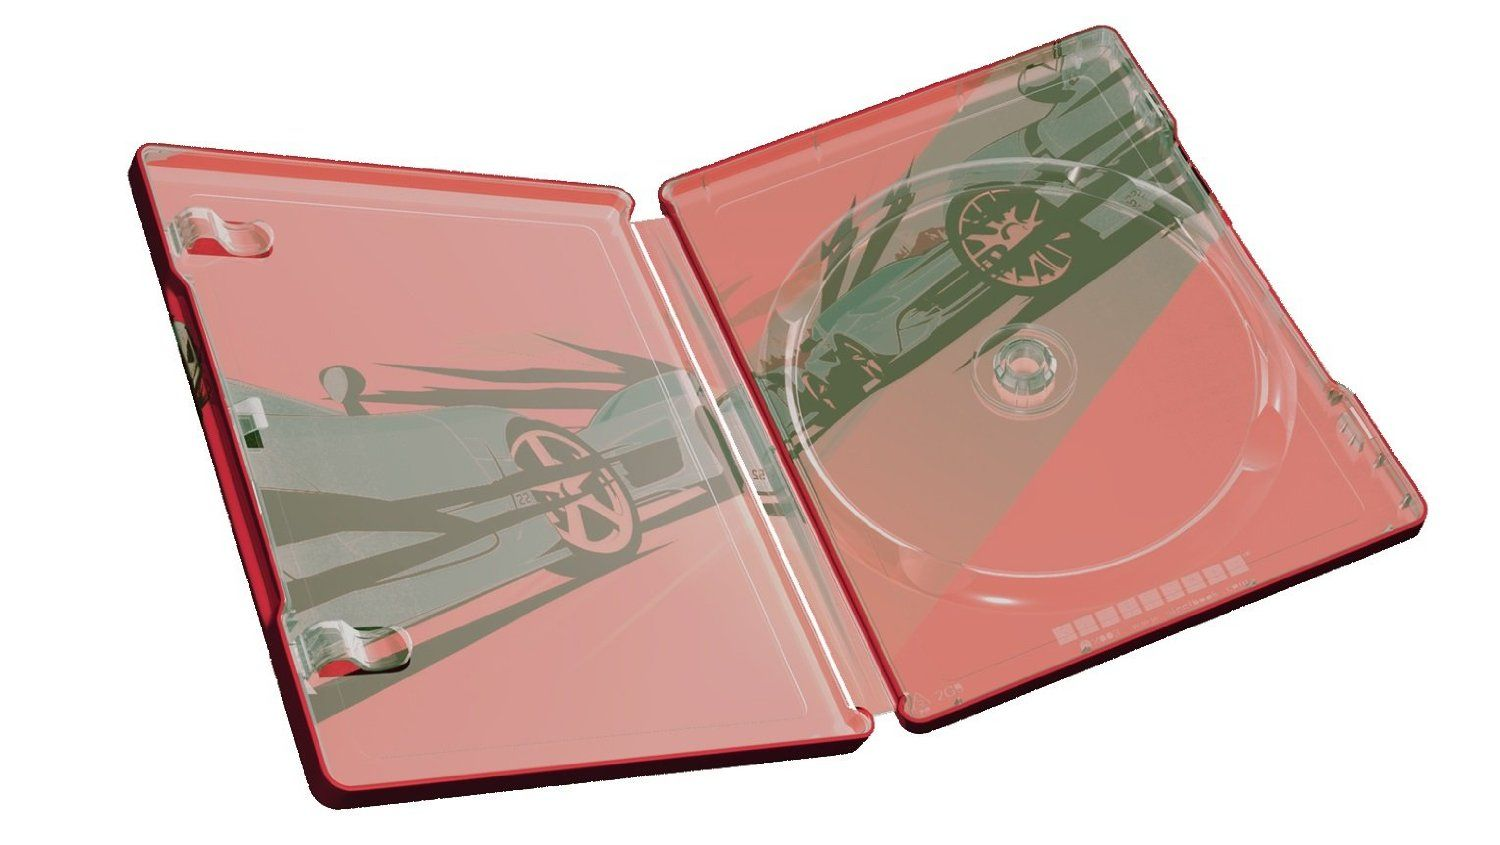 Driveclub Steelbook Edition (PS4) - 6